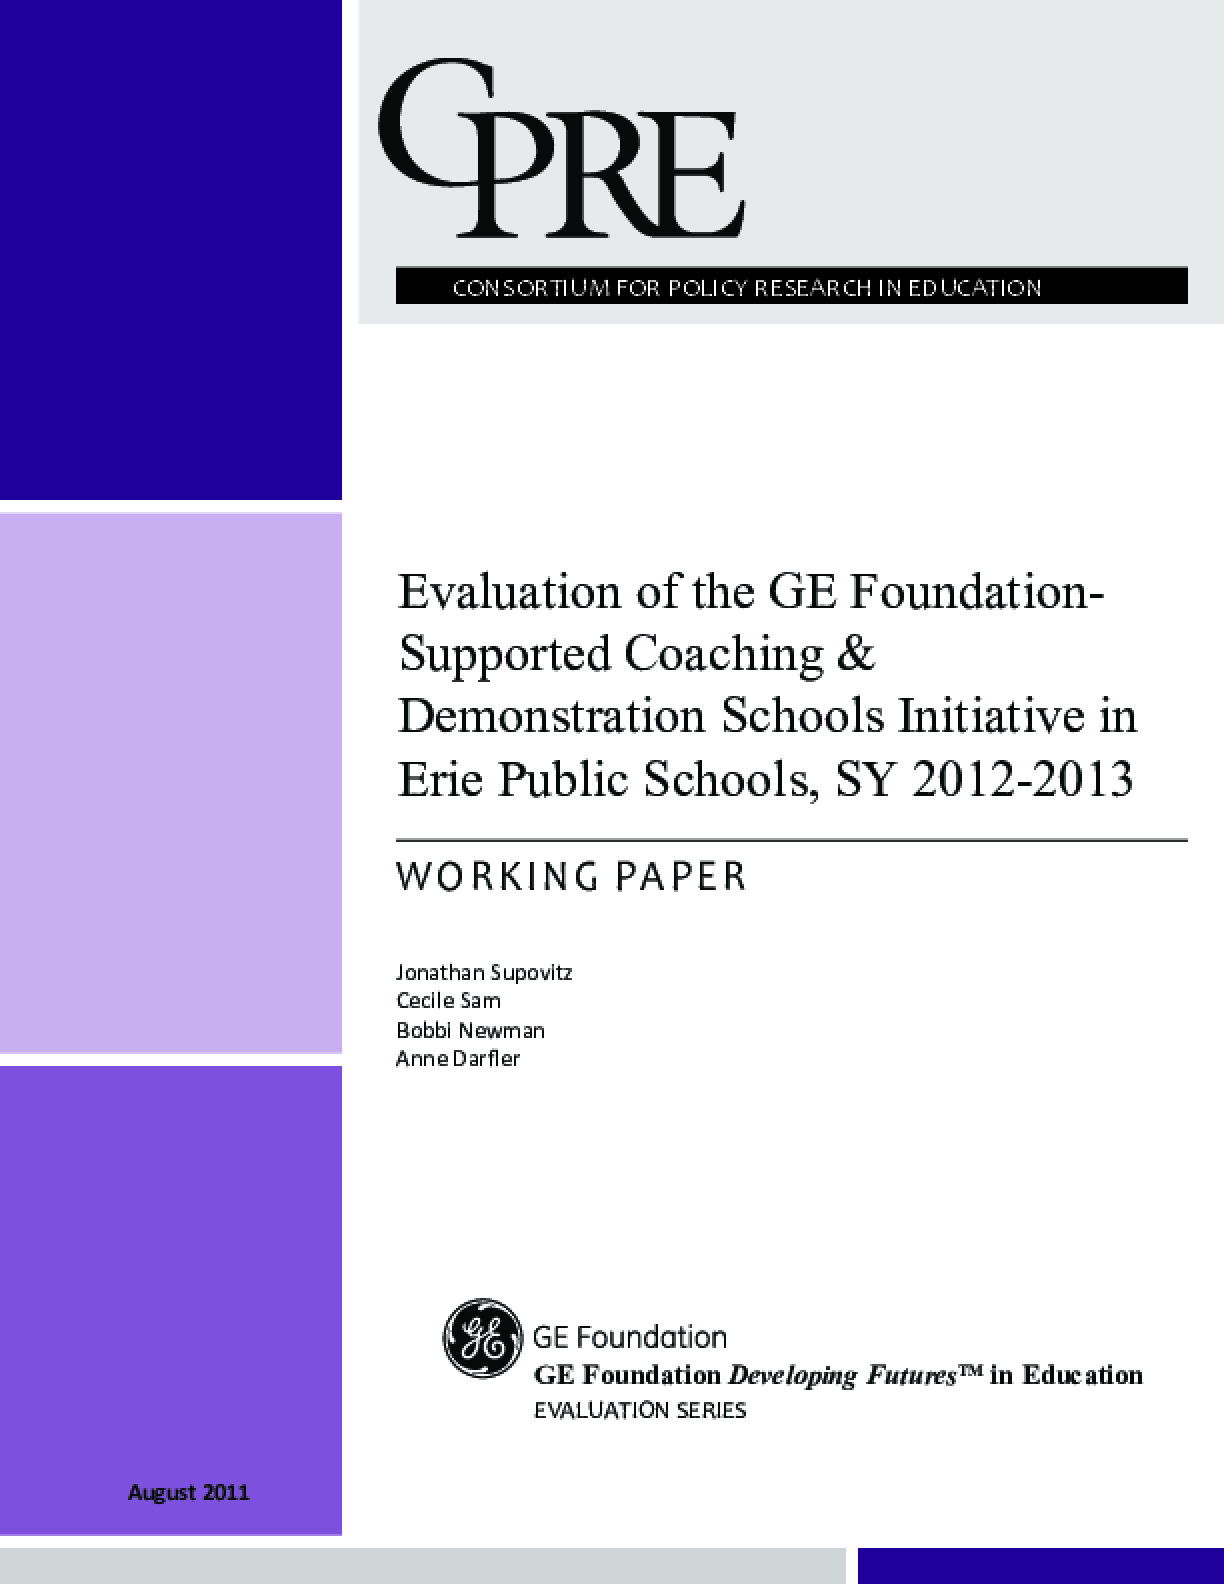 Evaluation of the GE Foundation-Supported Coaching & Demonstration Schools Initiative in Erie Public Schools, SY 2012-2013